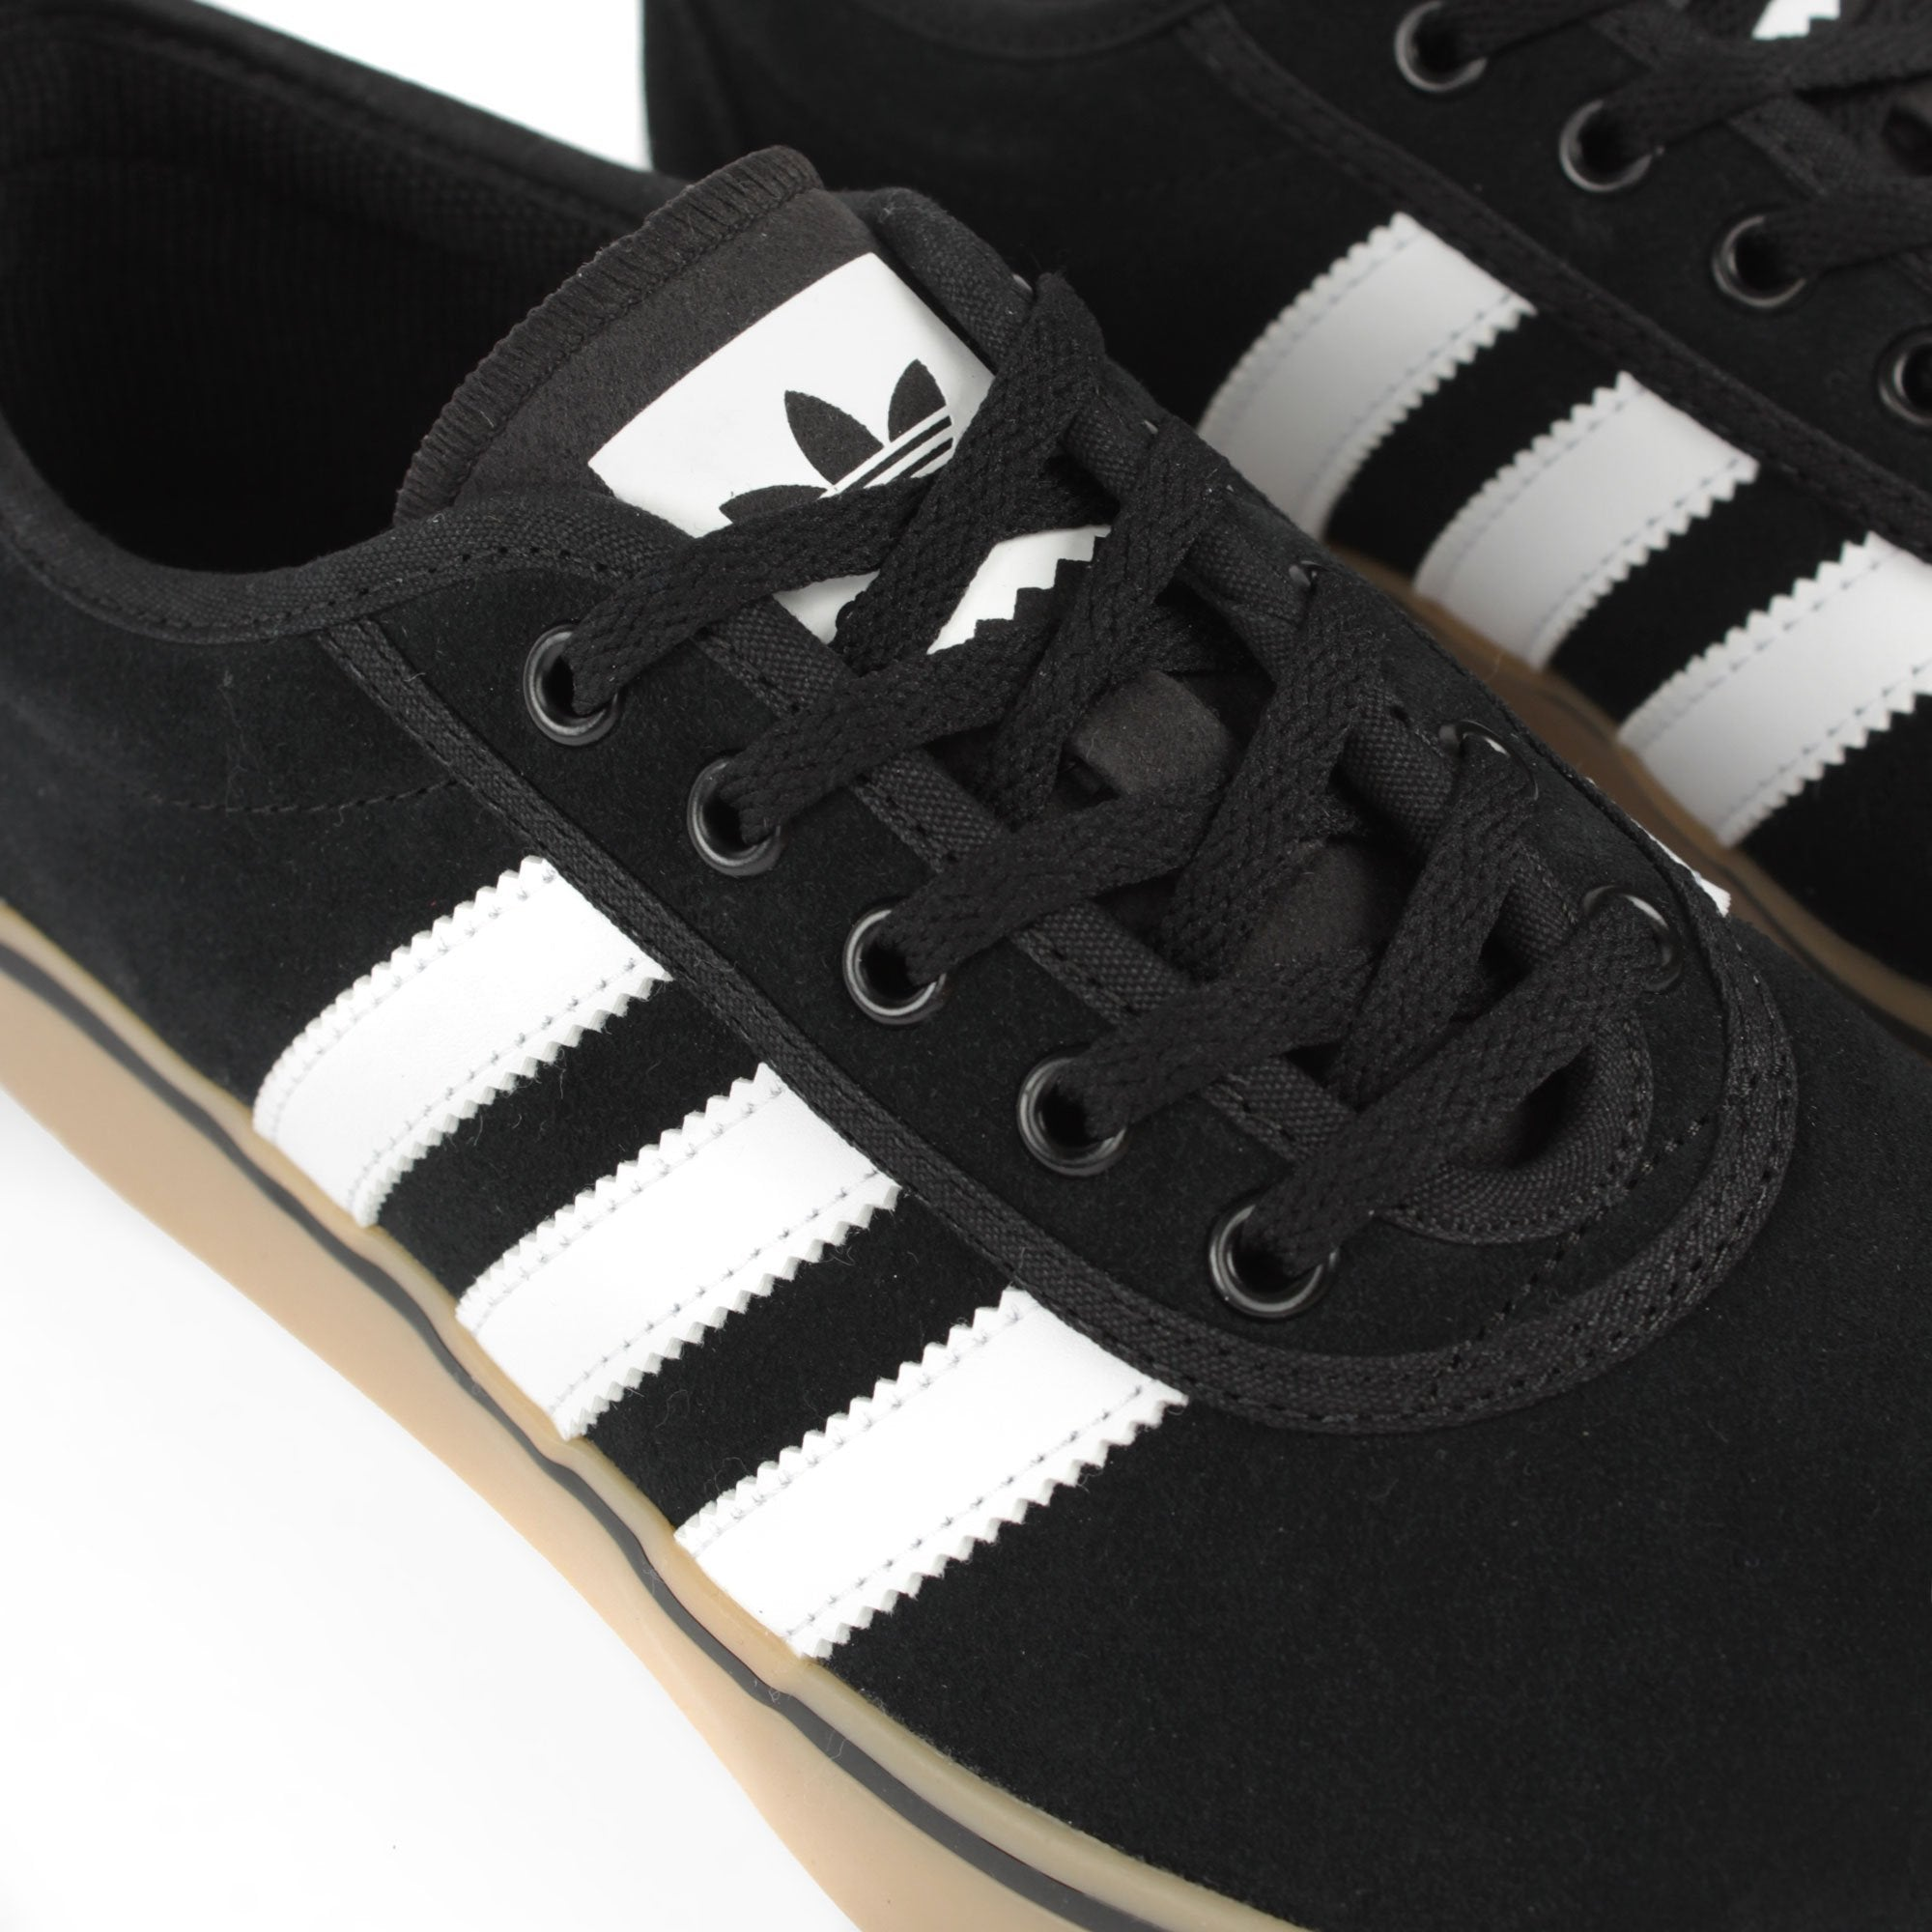 Adidas Adi-Ease Product Photo #4